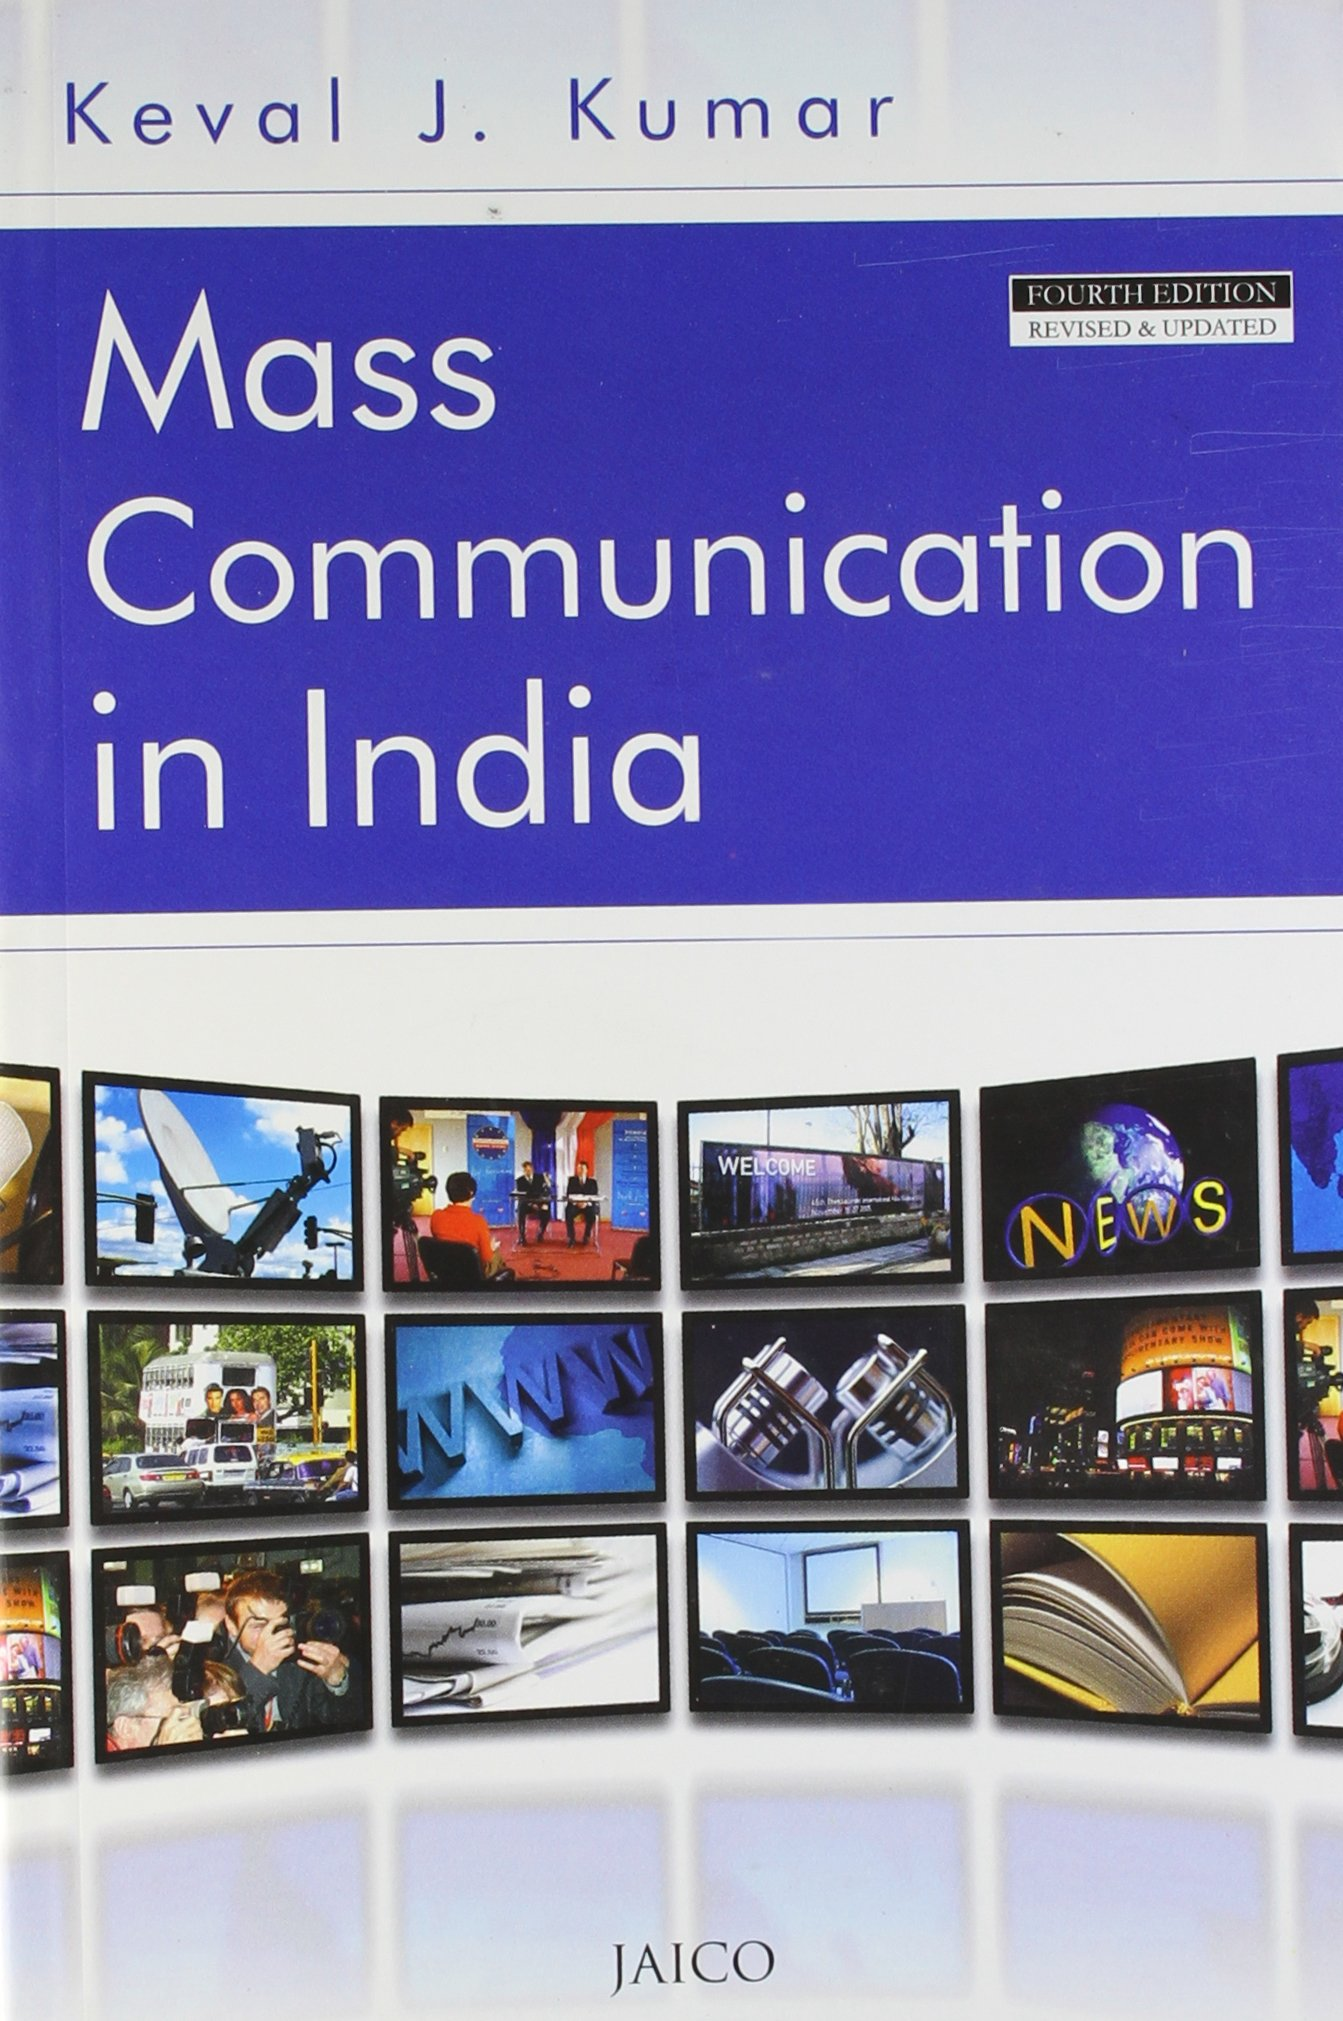 buy mass communication in book online at low prices in buy mass communication in book online at low prices in mass communication in reviews ratings in